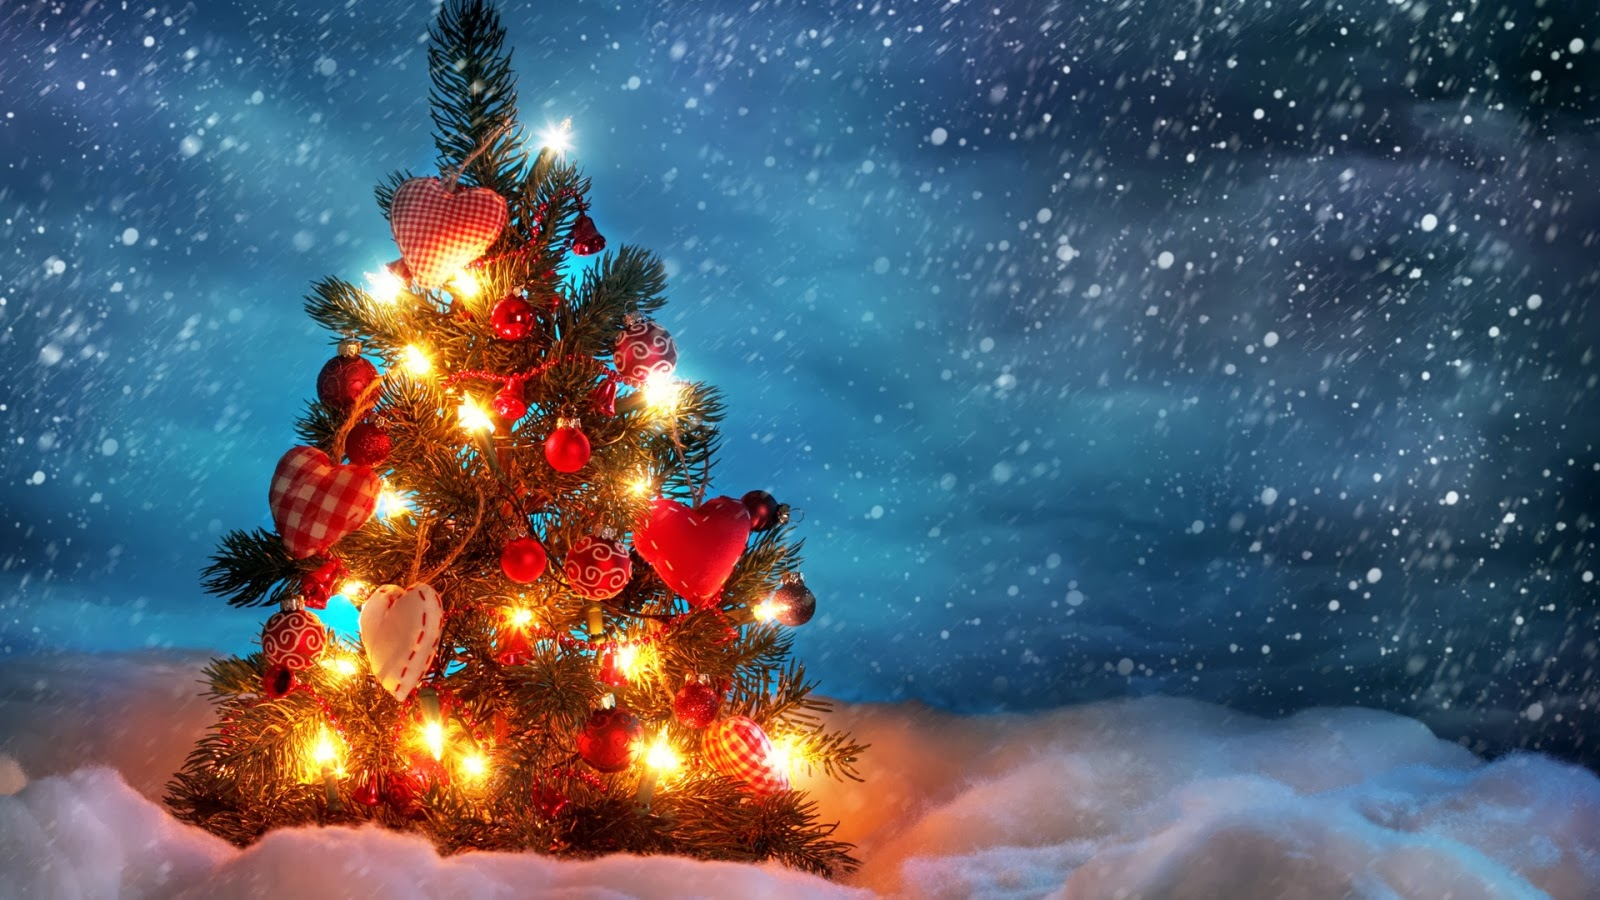 Merry Christmas Images Hd.Merry Christmas Hd Wallpapers Image Greetings Free